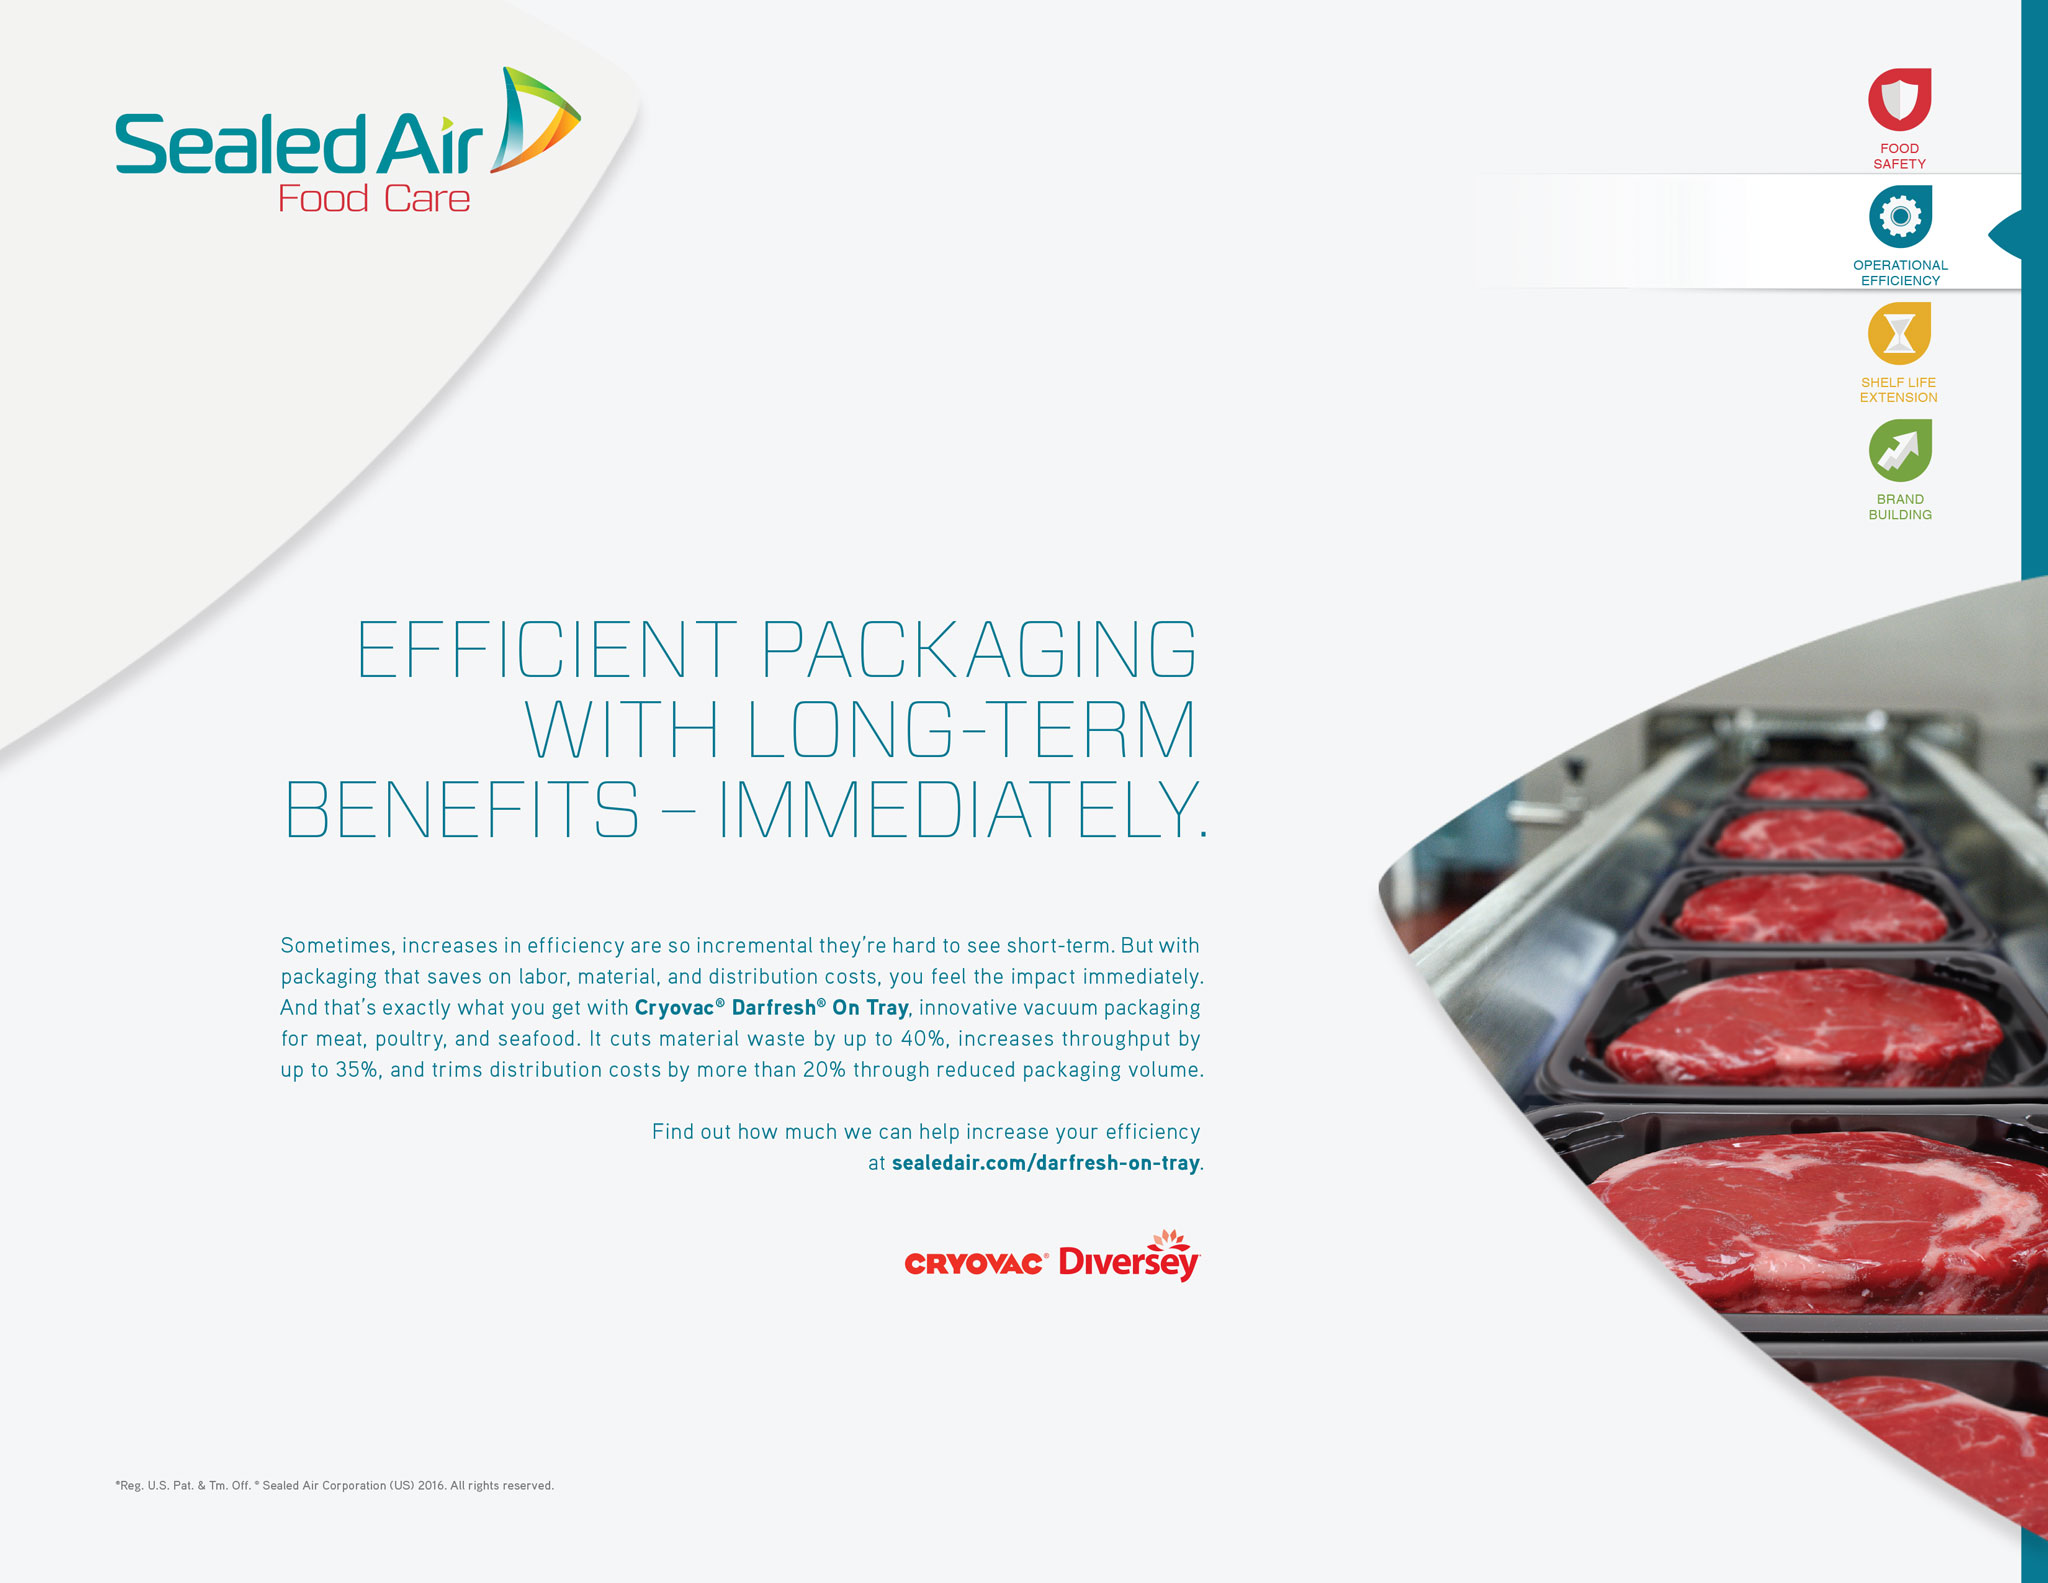 sealed air corporation s leveraged recapitalization View sealed_air from manac 101 at iim bangalore leveraged recapitalization transactions where a firm increases leverage substantially and makes a large cash payout to shareholders.